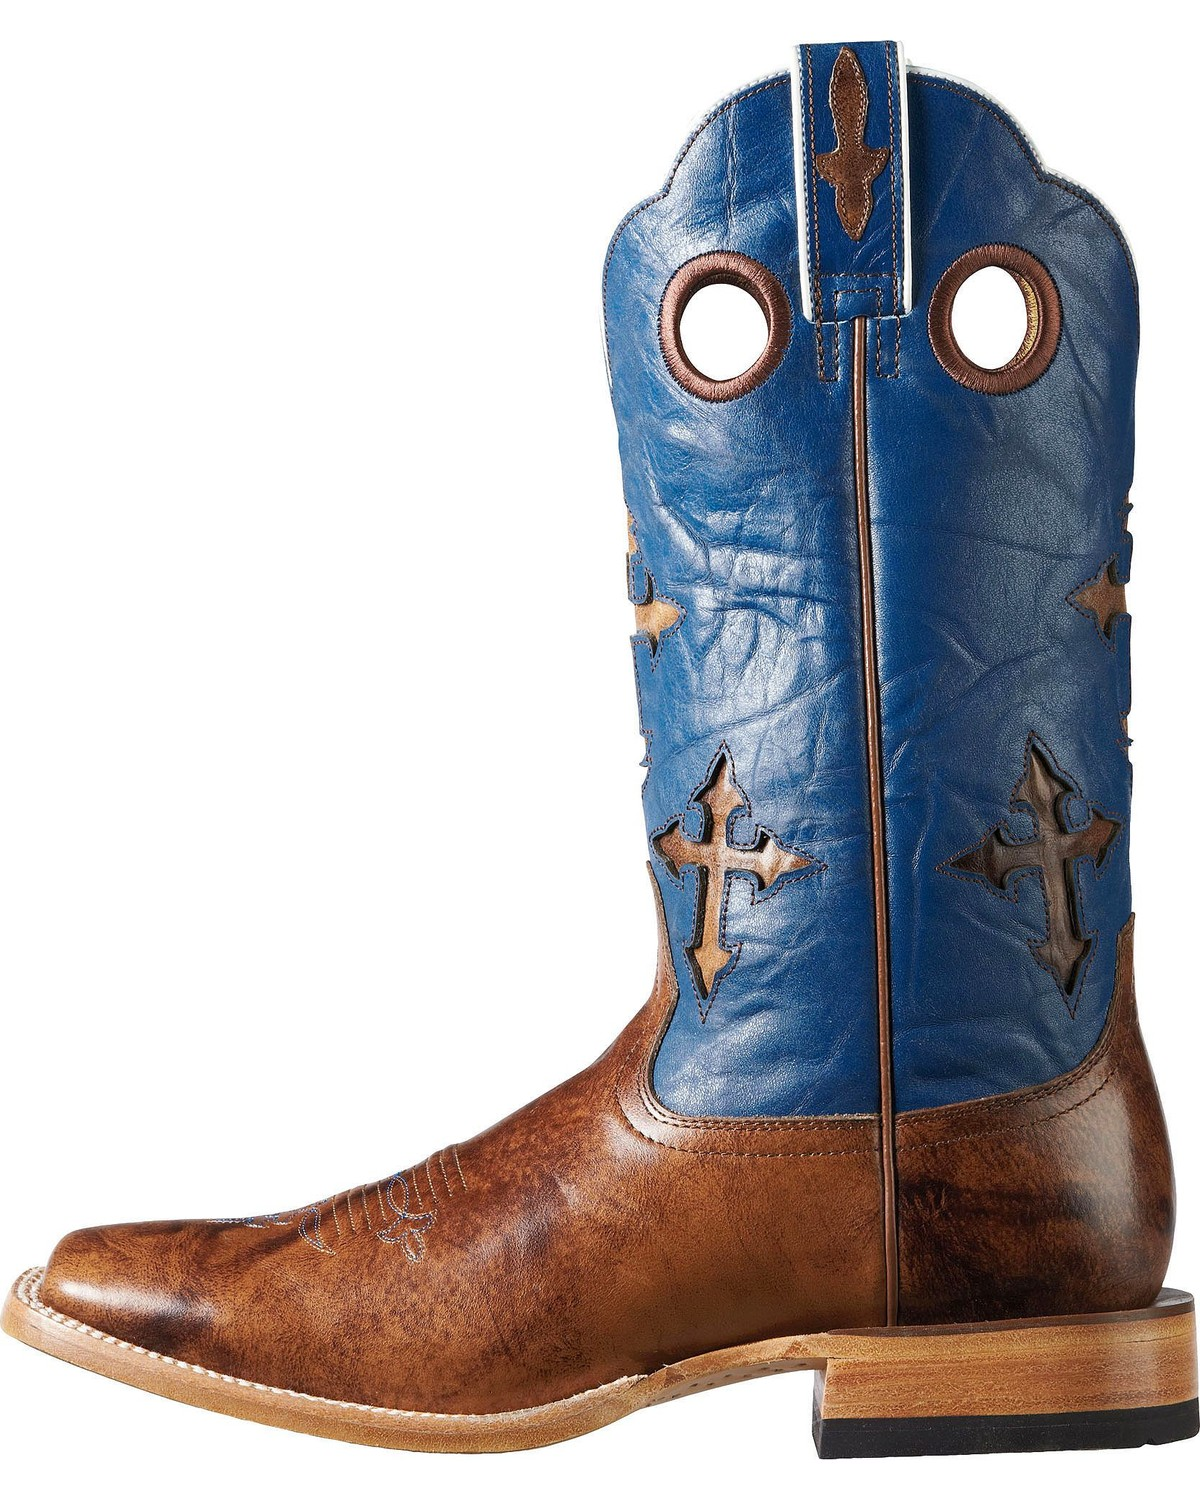 Ariat Ranch Cross Inlay Cowboy Boots - Square Toe - Country Outfitter